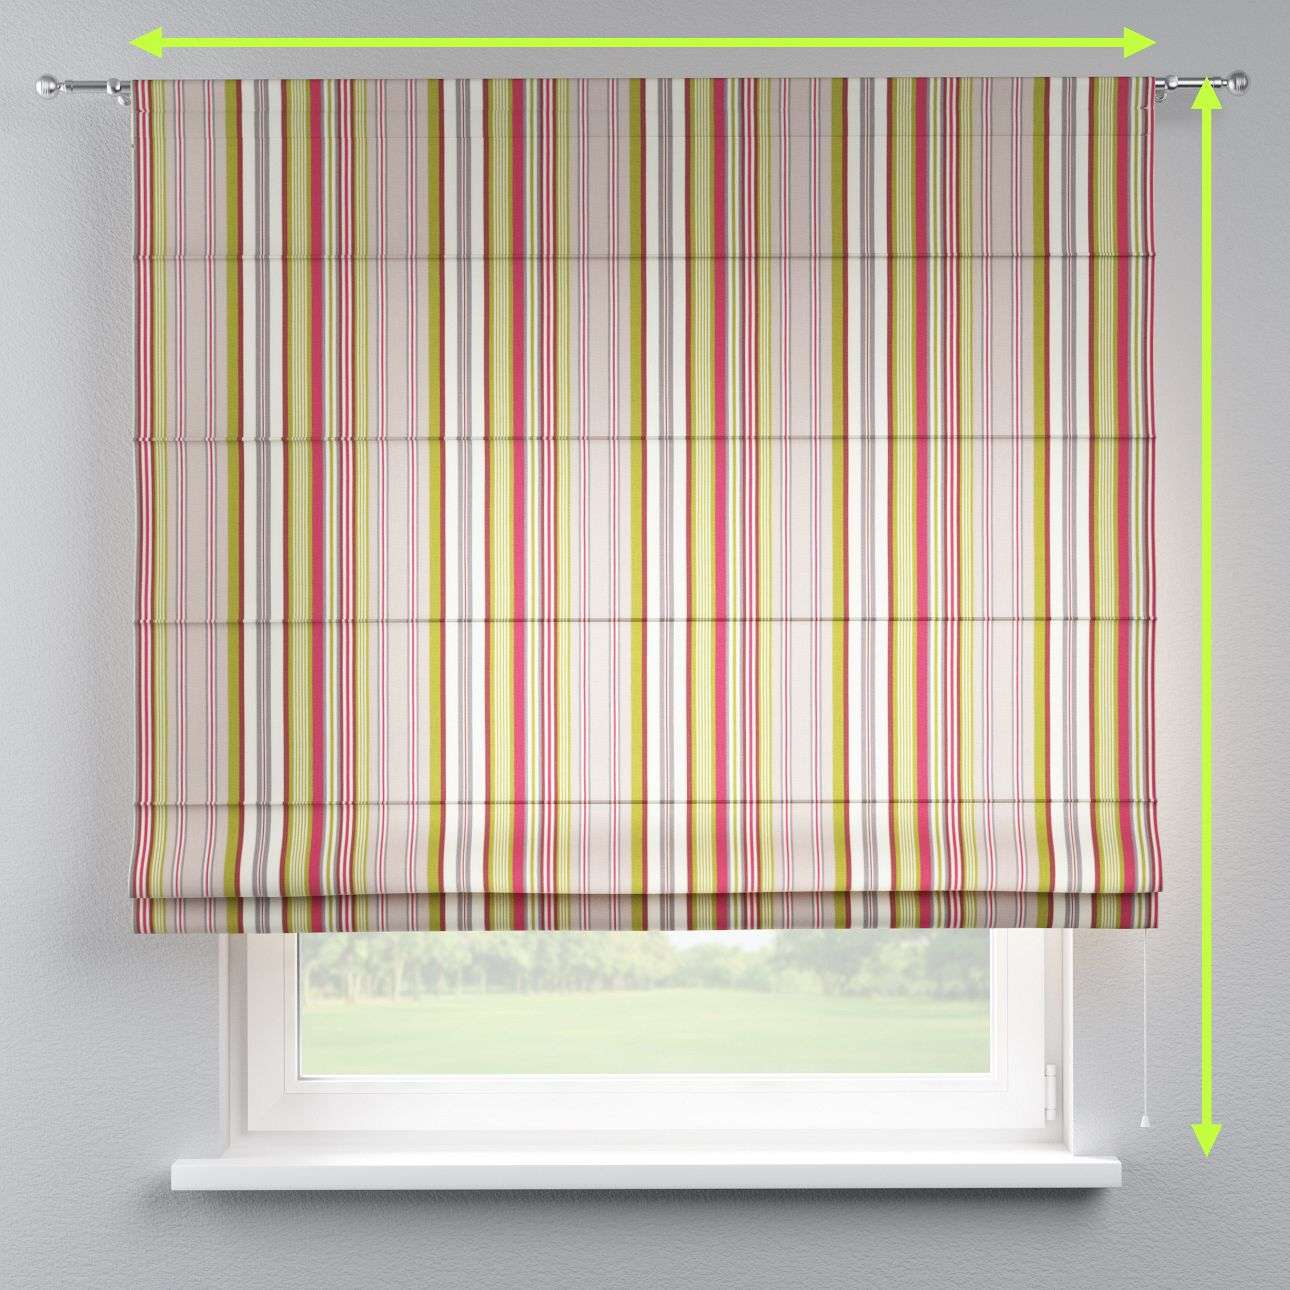 Torino slot roman blind in collection Flowers, fabric: 311-16